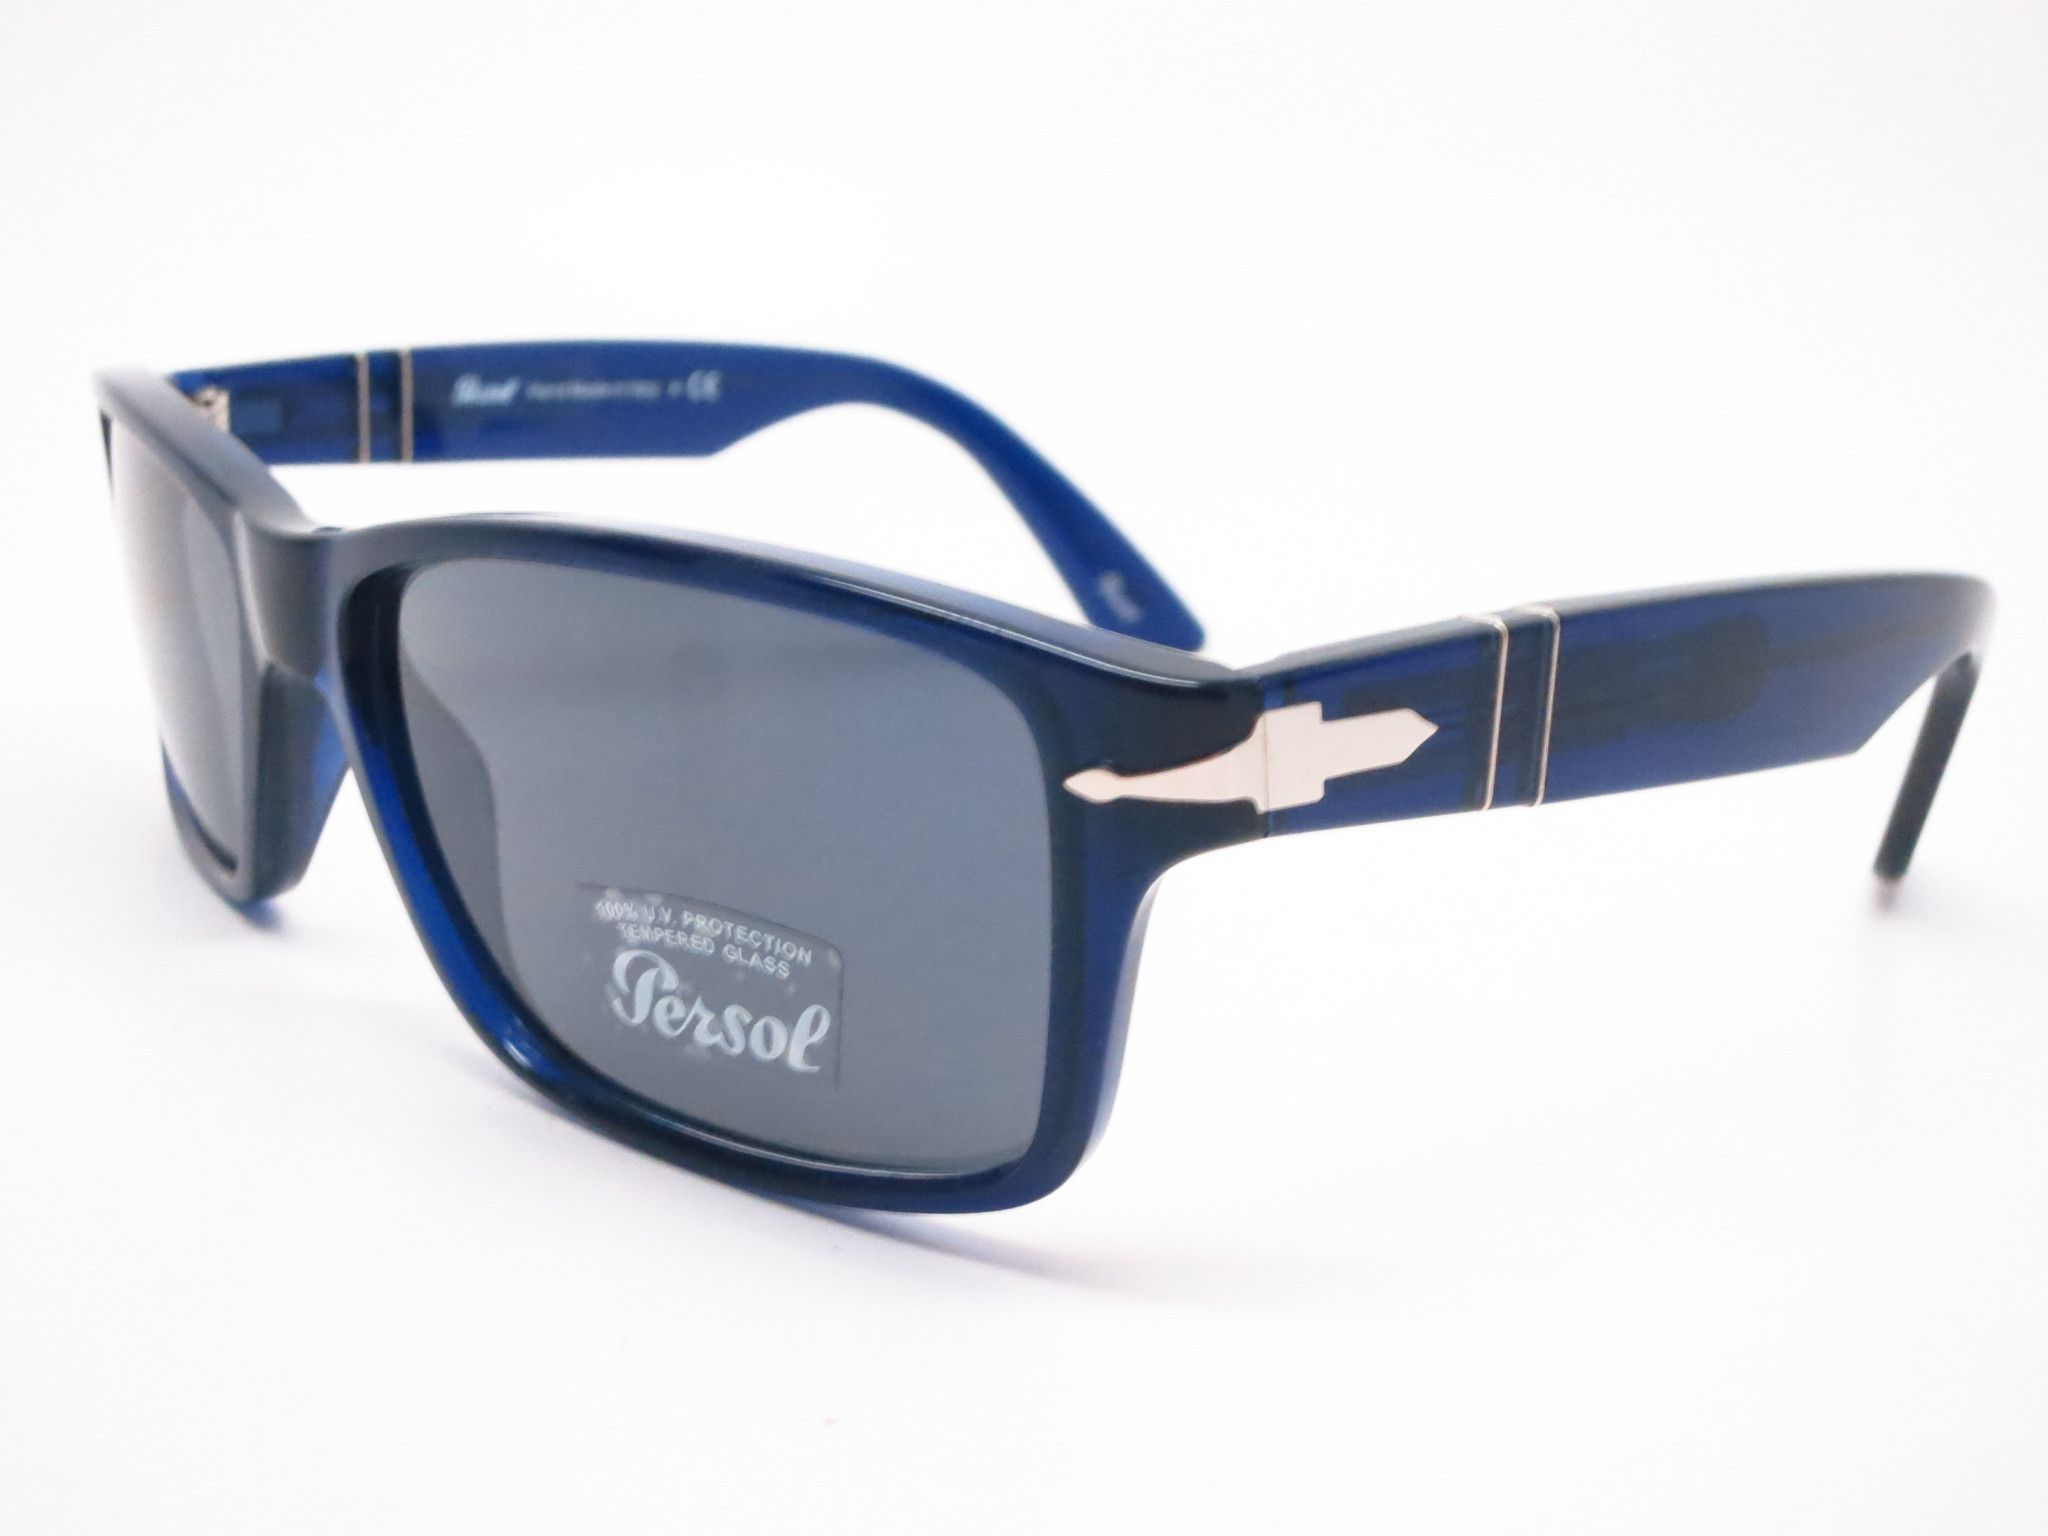 6e4a6d44a37d3 Product Details of Persol PO 3154S Sunglasses Brand   Persol Model Name    PO 3154S Color